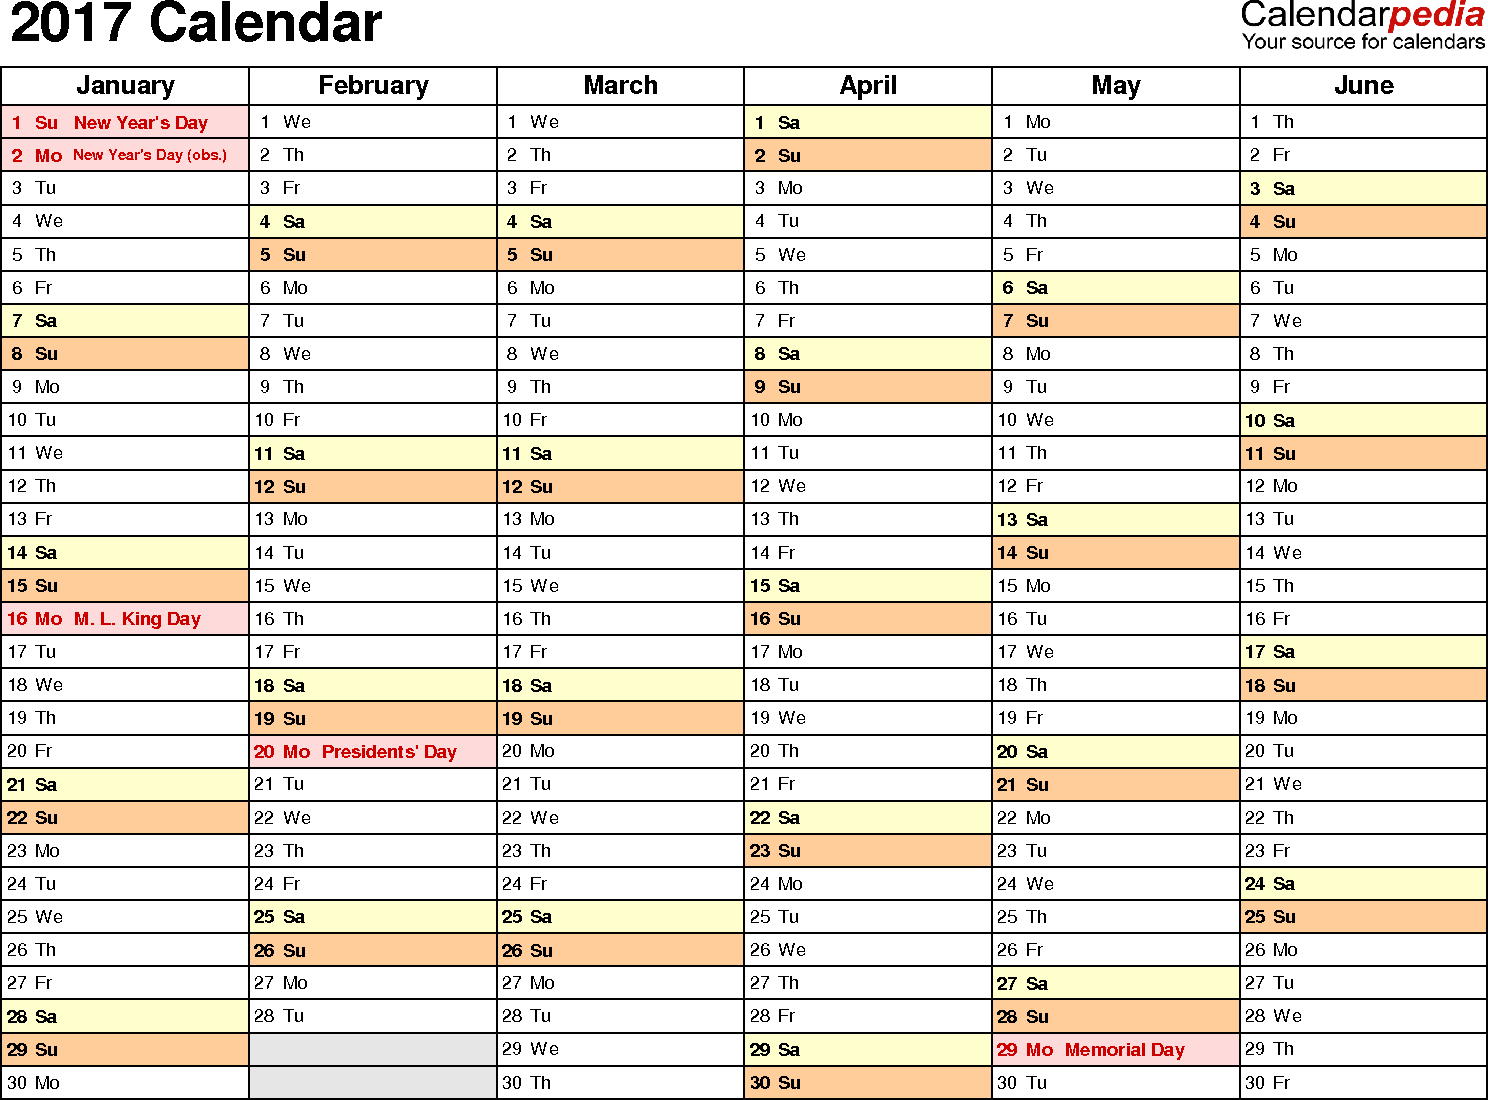 Ediblewildsus  Fascinating  Calendar  Download  Free Printable Excel Templates Xls With Gorgeous Template   Calendar For Excel Months Horizontally  Pages Landscape Orientation With Awesome Insert Dates In Excel Also Edit List In Excel In Addition Add In Excel  And Find Slope On Excel As Well As Conditional Highlighting Excel Additionally Drop Box Excel From Calendarpediacom With Ediblewildsus  Gorgeous  Calendar  Download  Free Printable Excel Templates Xls With Awesome Template   Calendar For Excel Months Horizontally  Pages Landscape Orientation And Fascinating Insert Dates In Excel Also Edit List In Excel In Addition Add In Excel  From Calendarpediacom